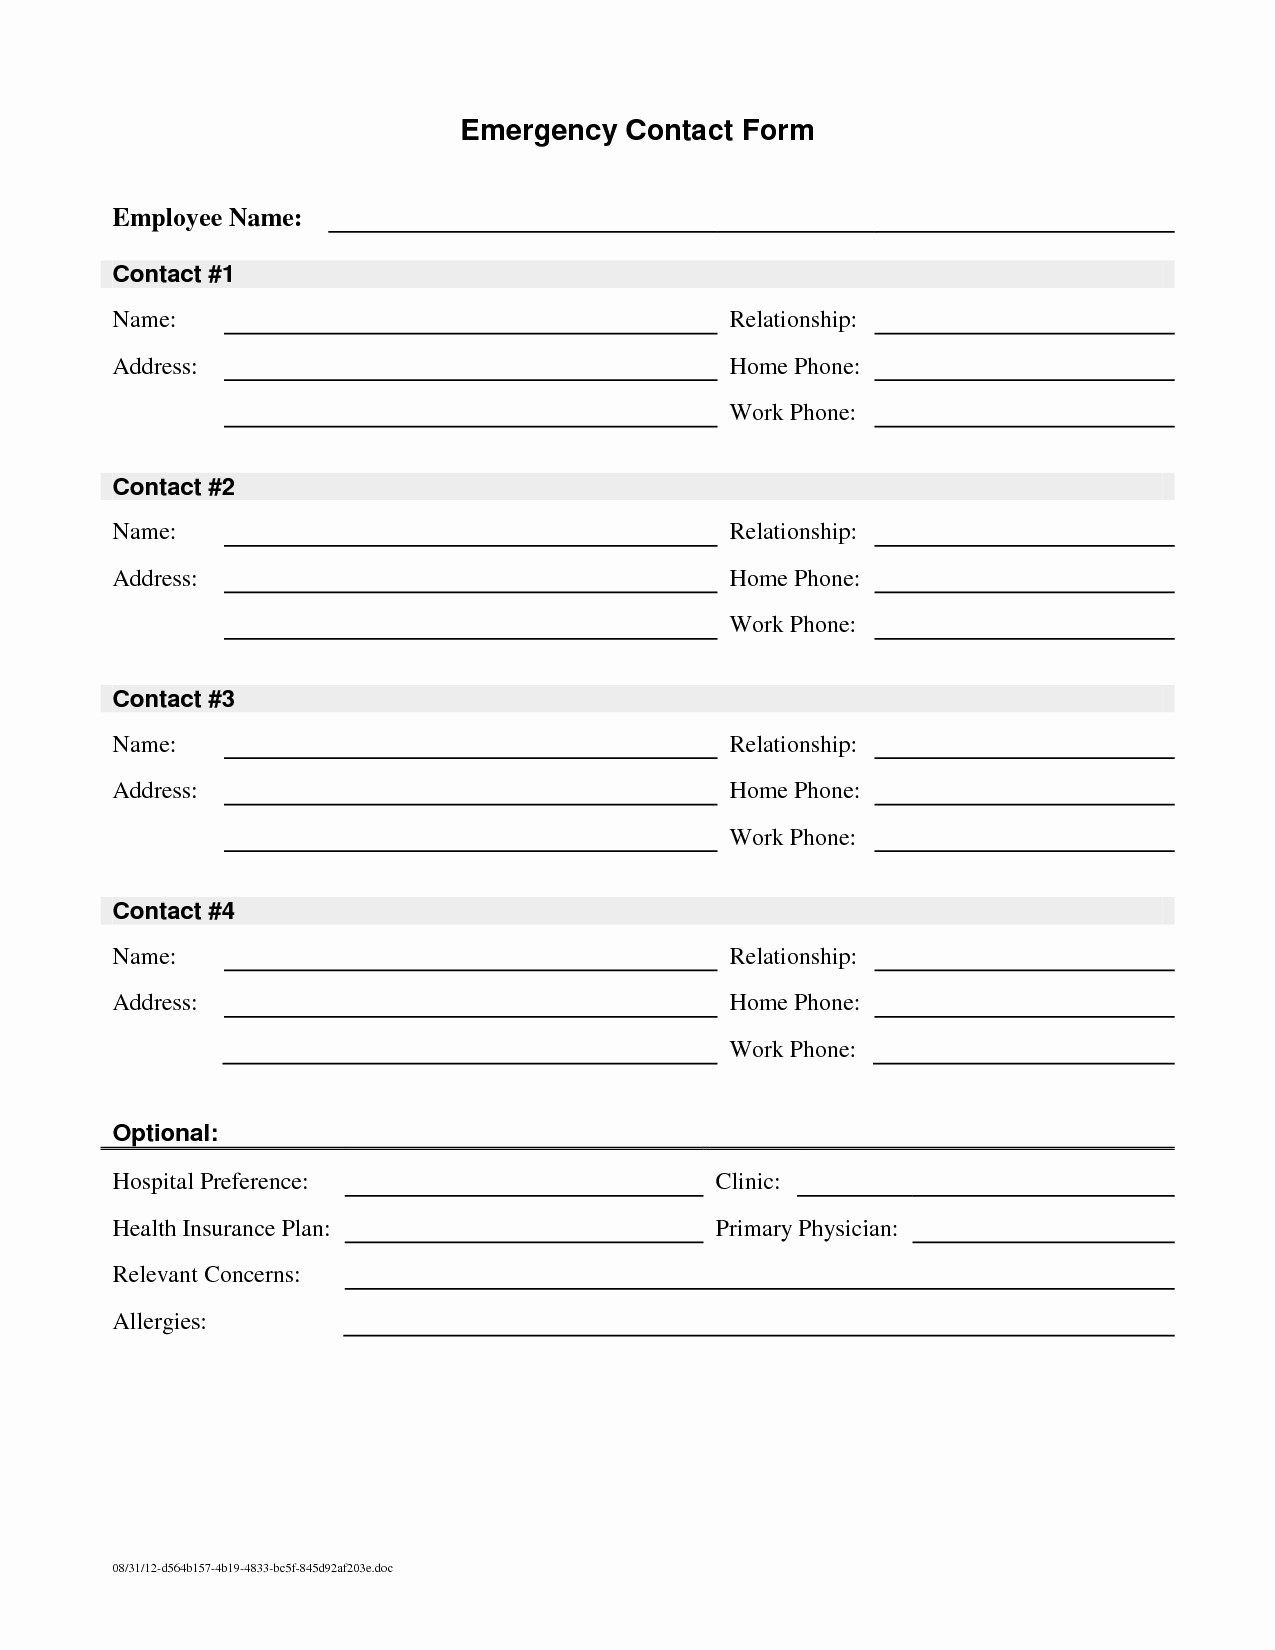 Emergency Contact form Template Free New Employee Emergency Contact Printable form to Pin